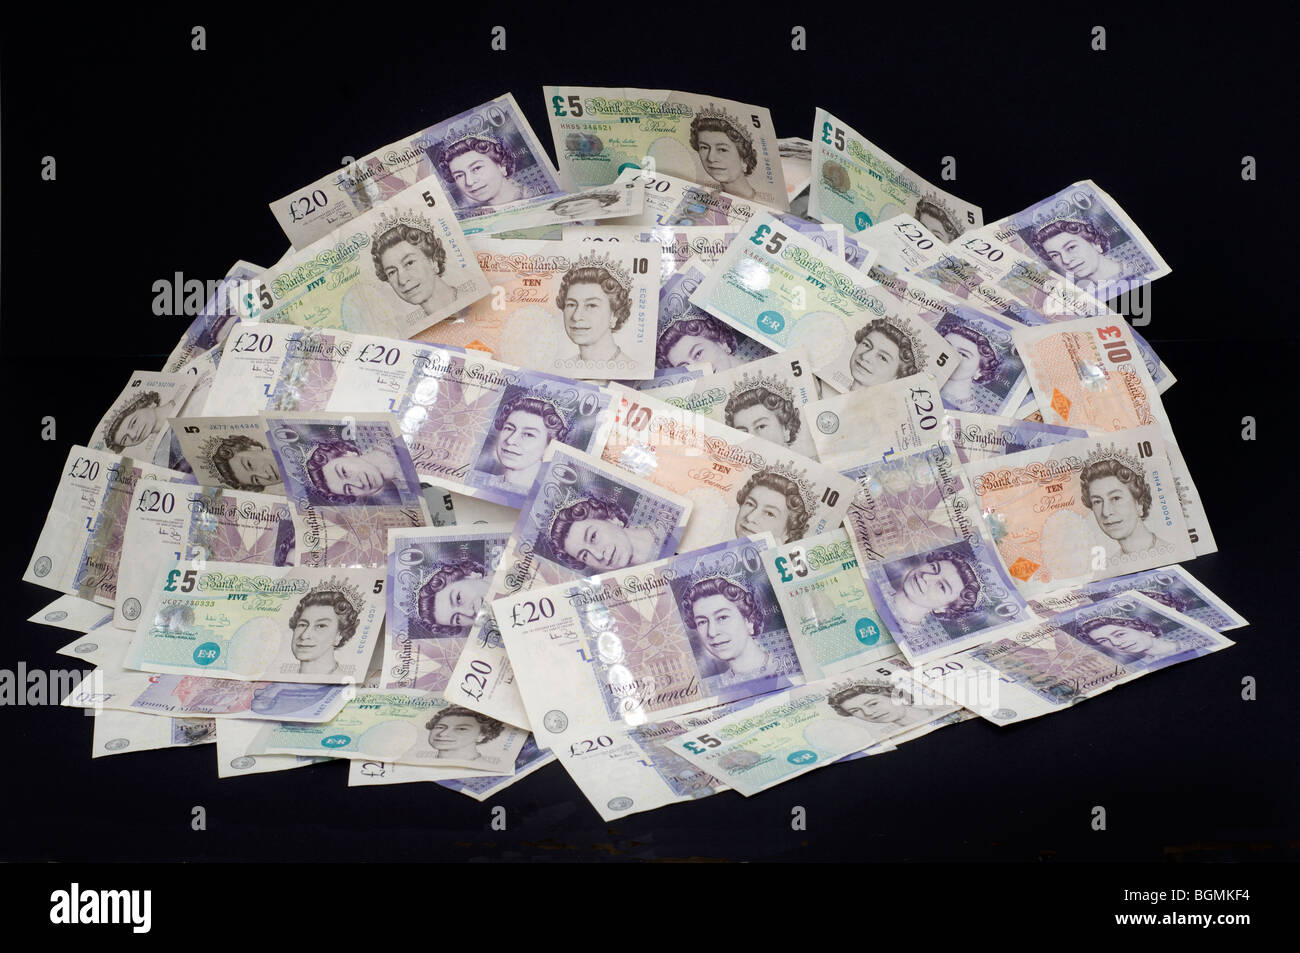 A pile of assorted banknotes in £5 £10 and £20 denominations - Stock Image